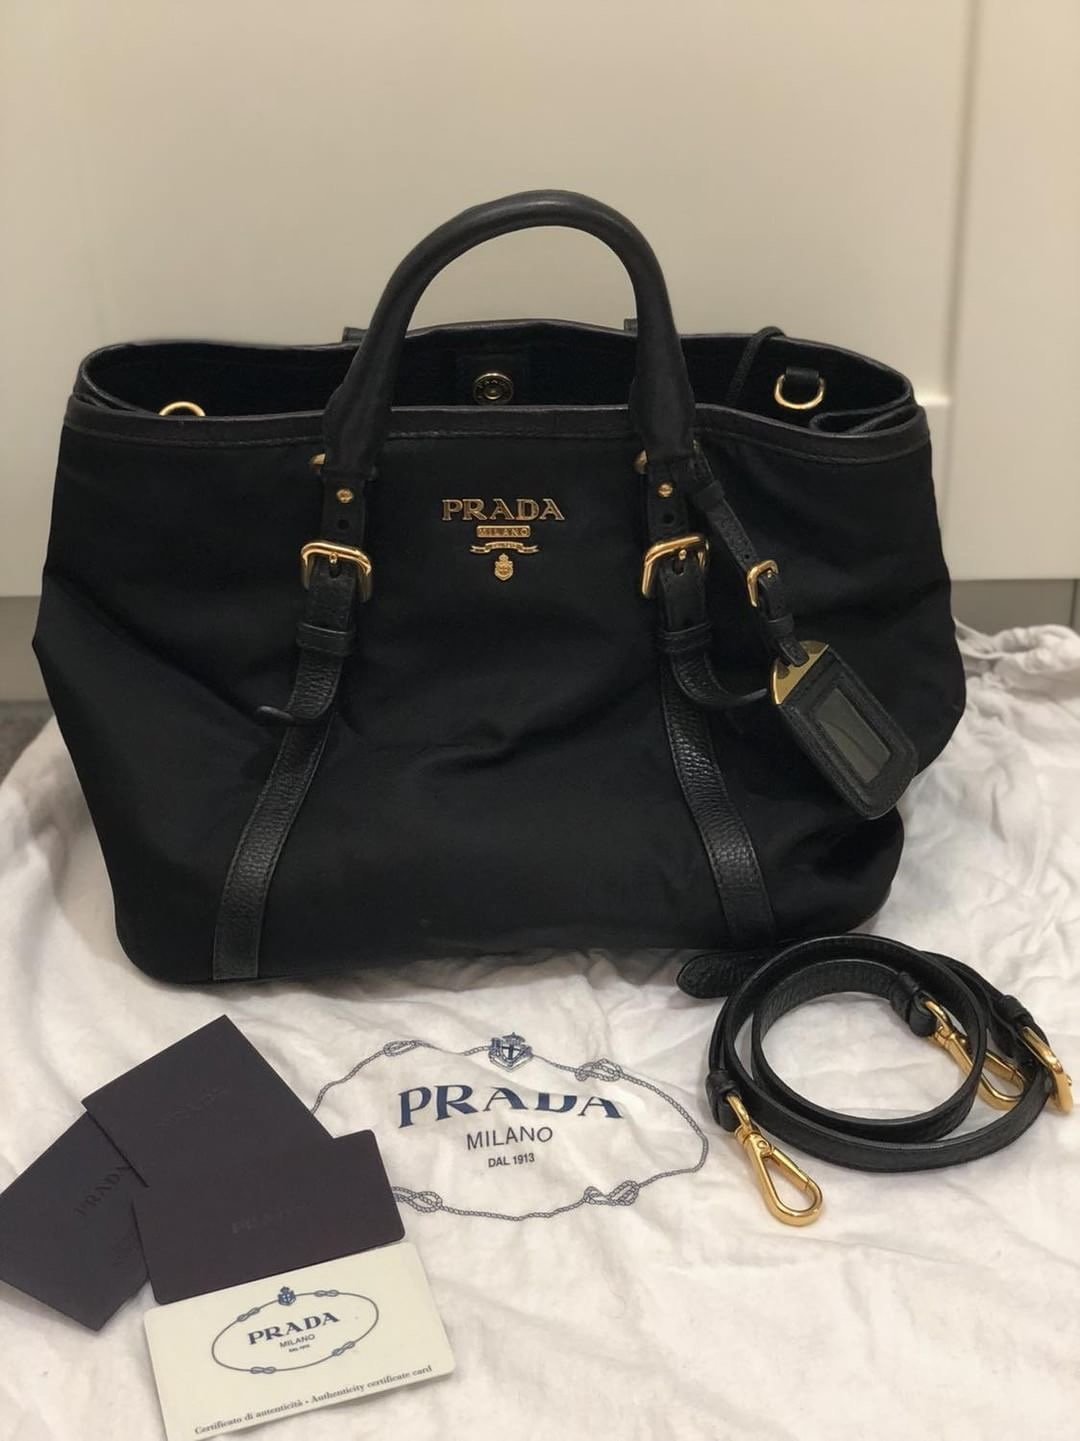 45a749d9ebd1 ... coupon code for prada bn1841 tessuto shooping tote condition 9.5 10  like new used less than